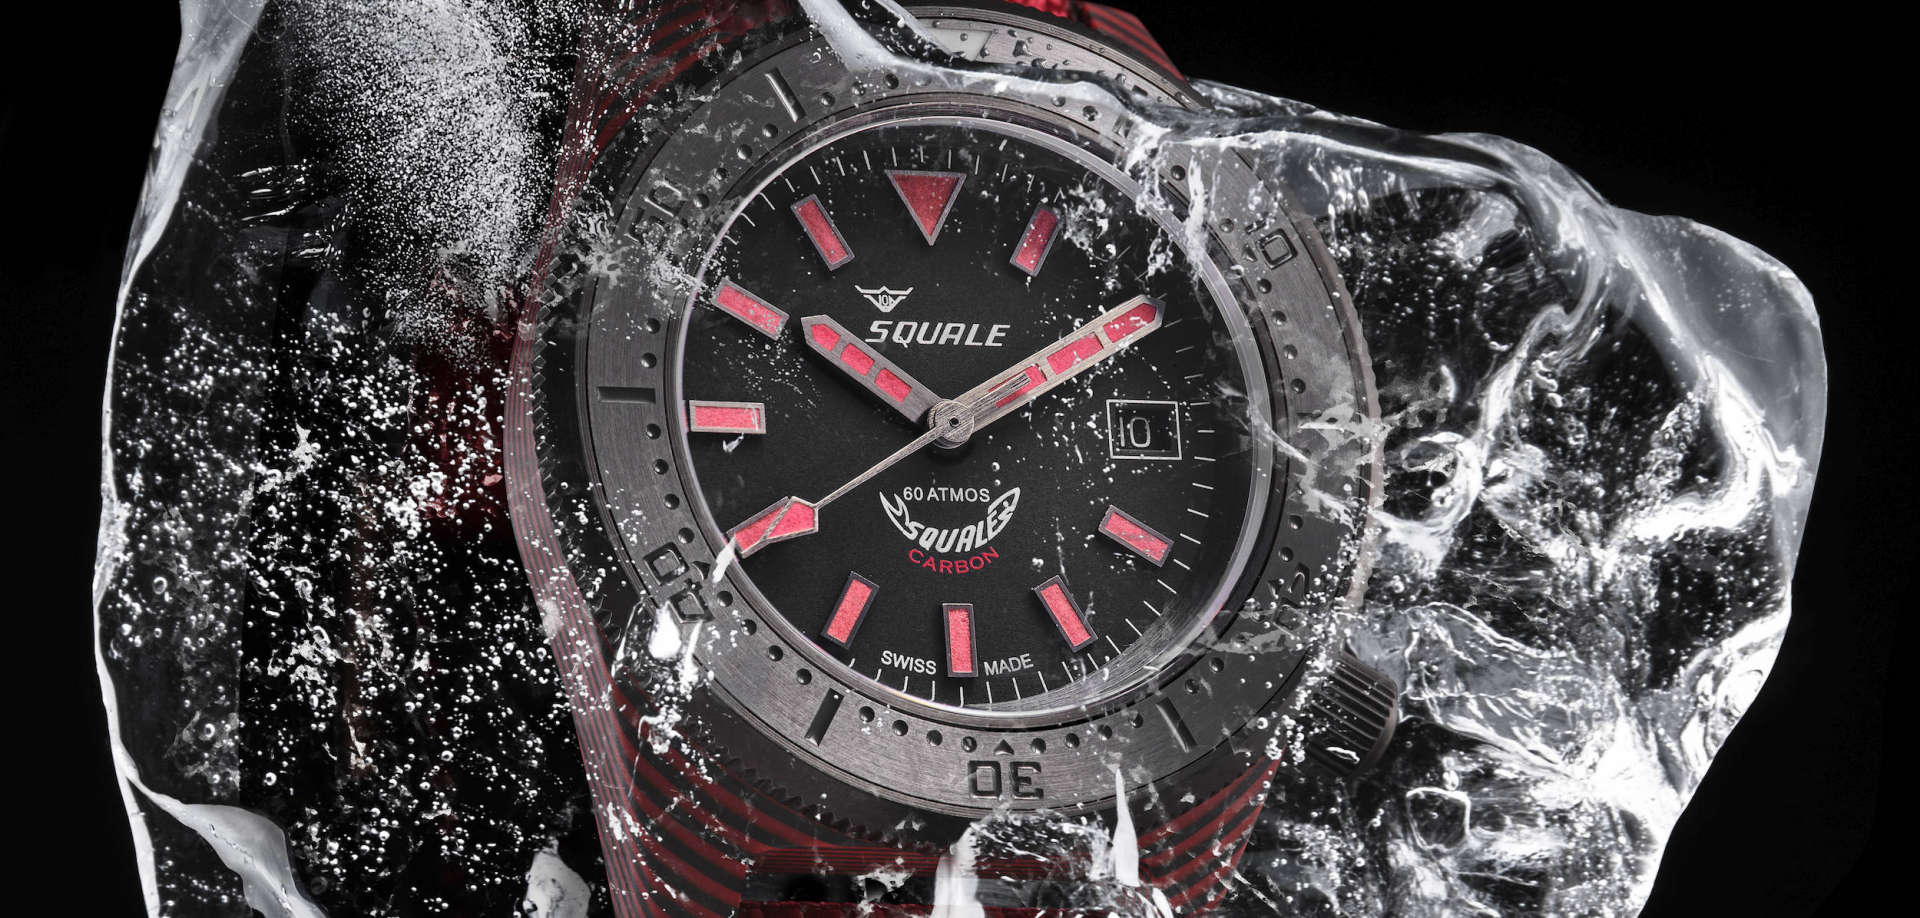 The History of Squale Watches